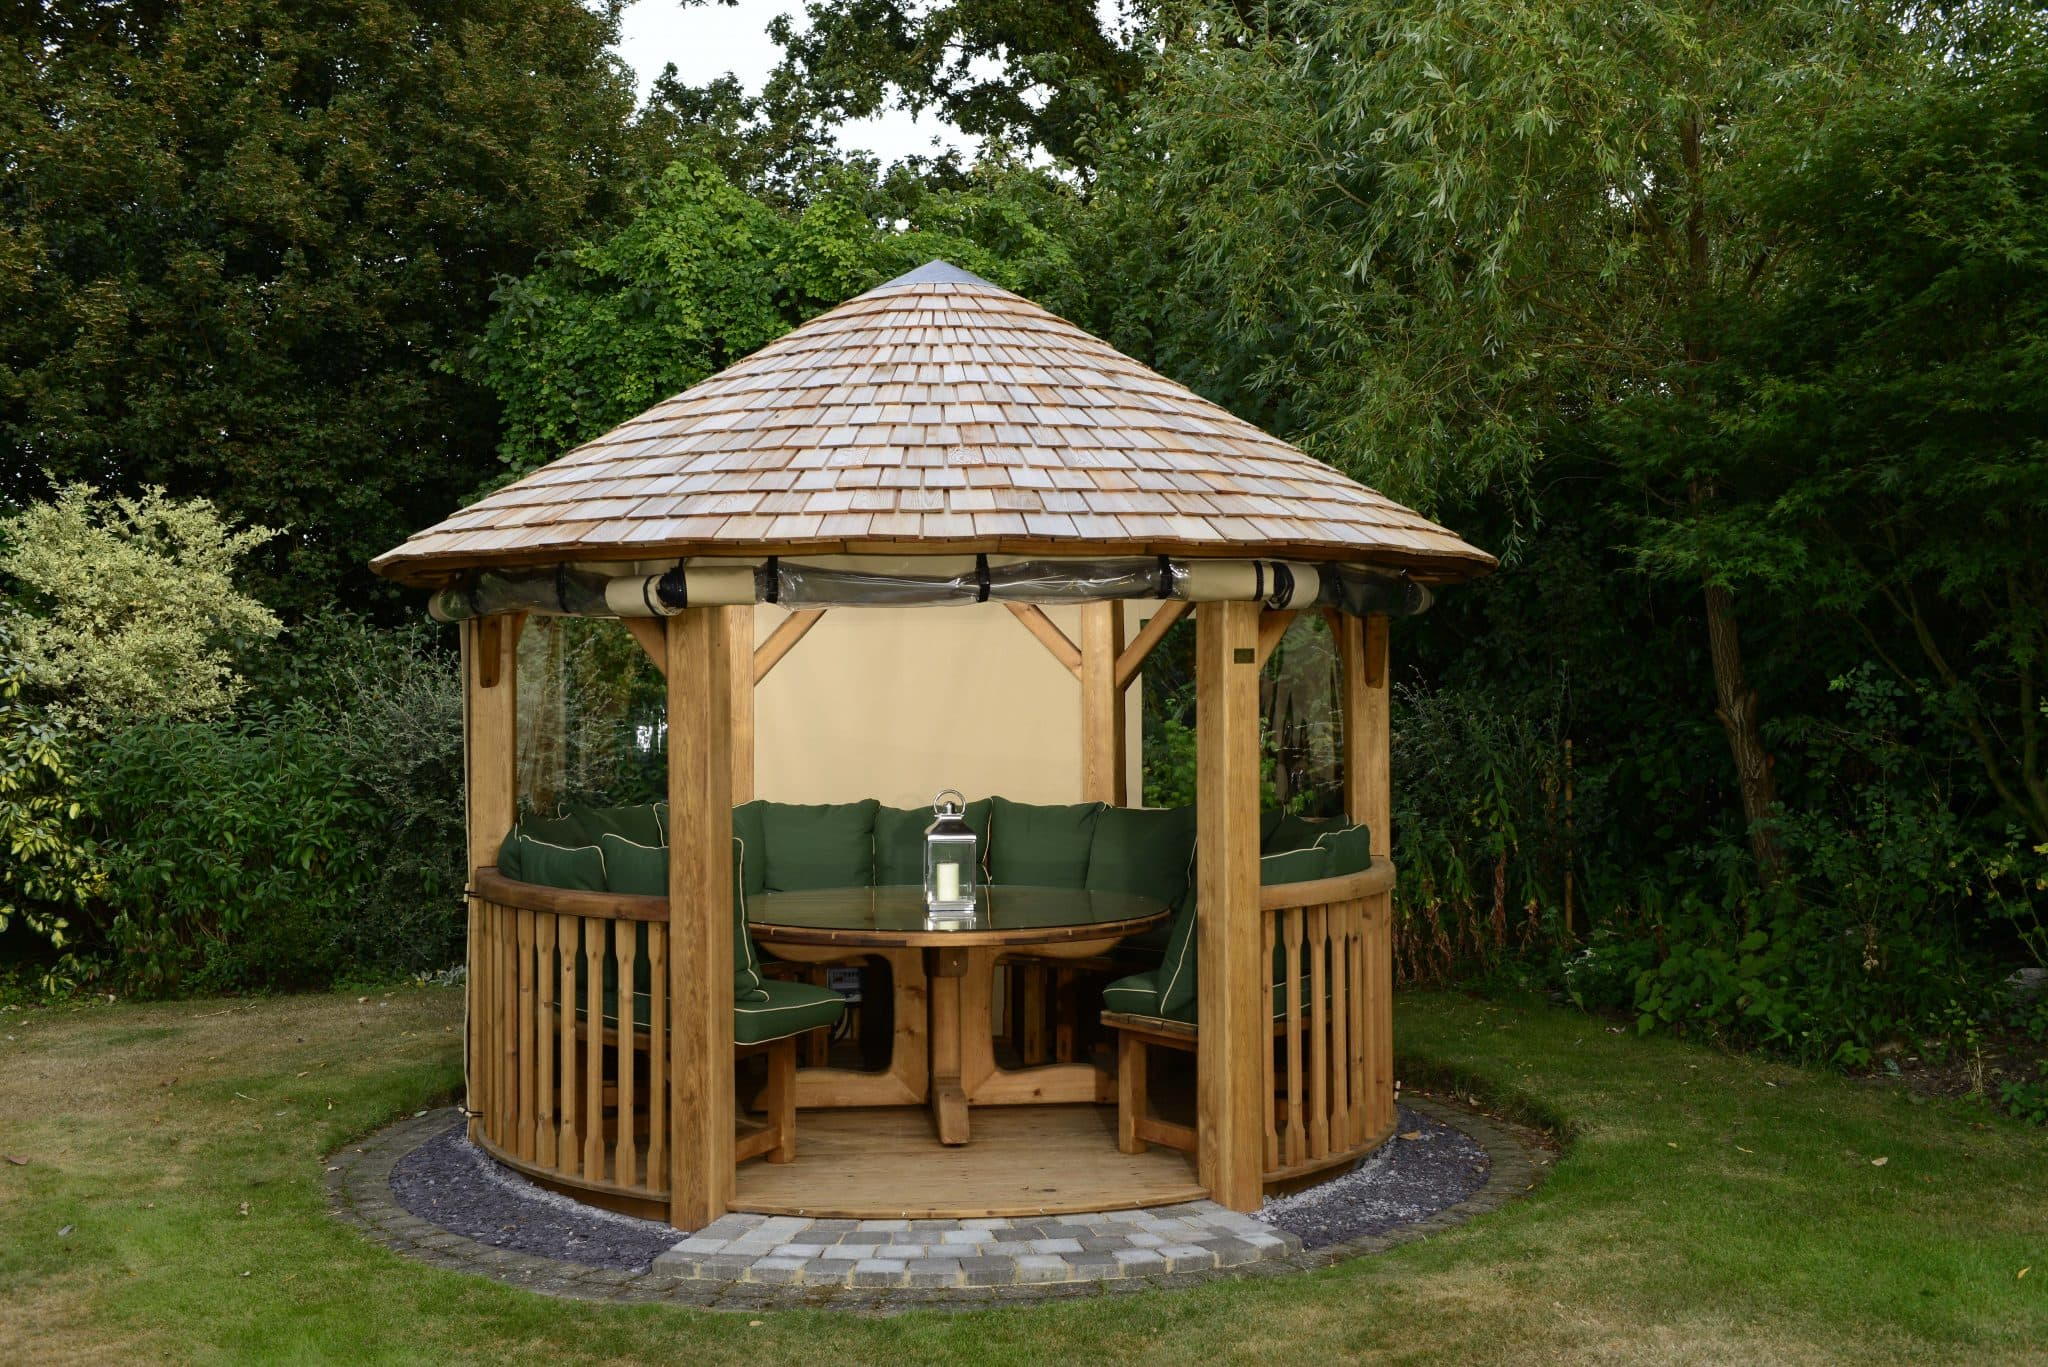 One of the newest additions to the Crown Pavilions garden building  collection will also be available to view and offers a luxurious space to  any garden.